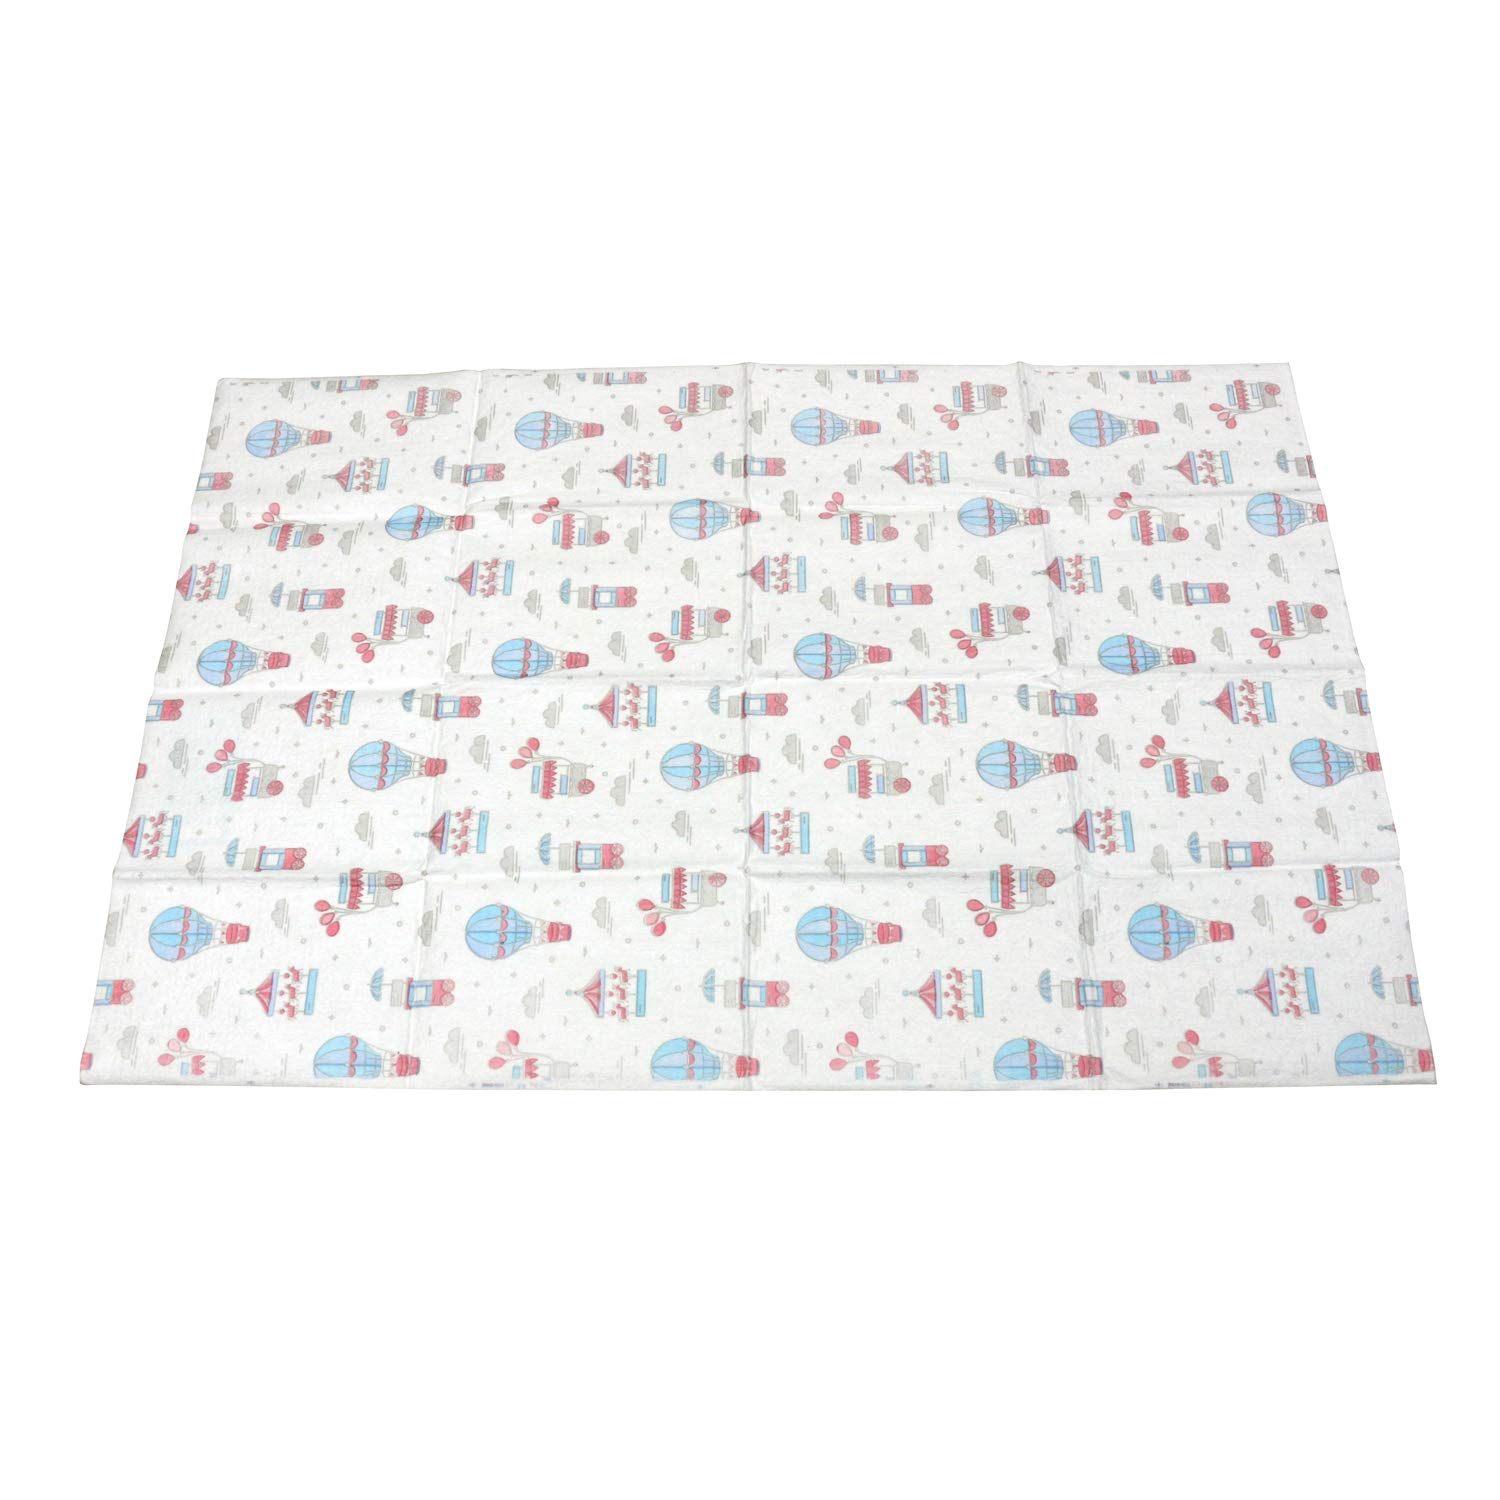 None Cozy Quilt Designs CQD01187 a Star is Born Pattern